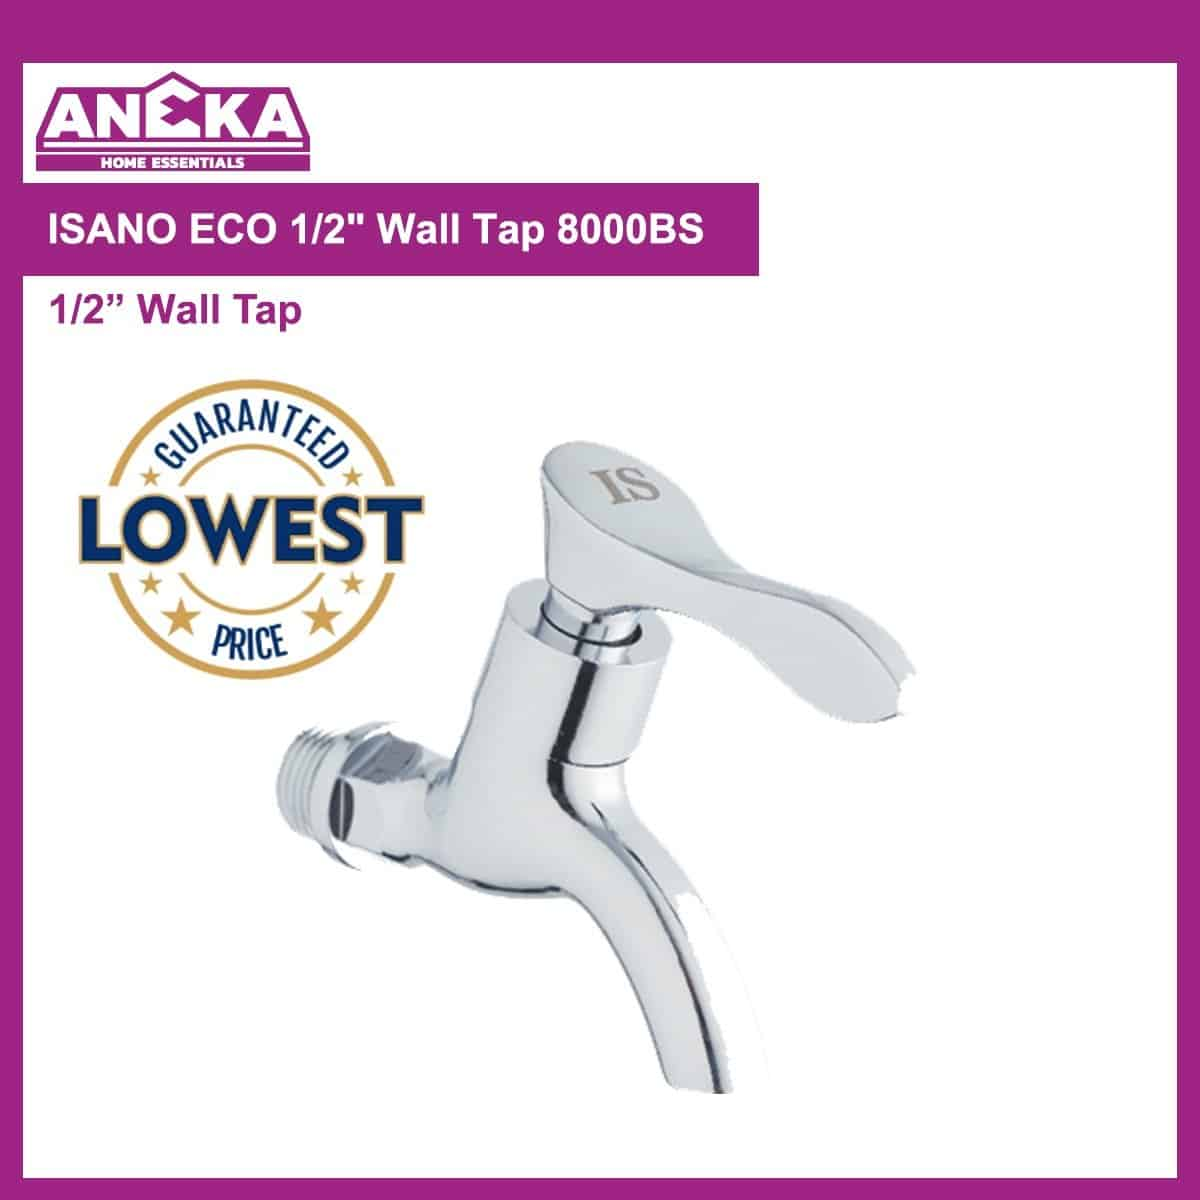 "ISANO ECO 1/2"" Wall Tap 8000BS"